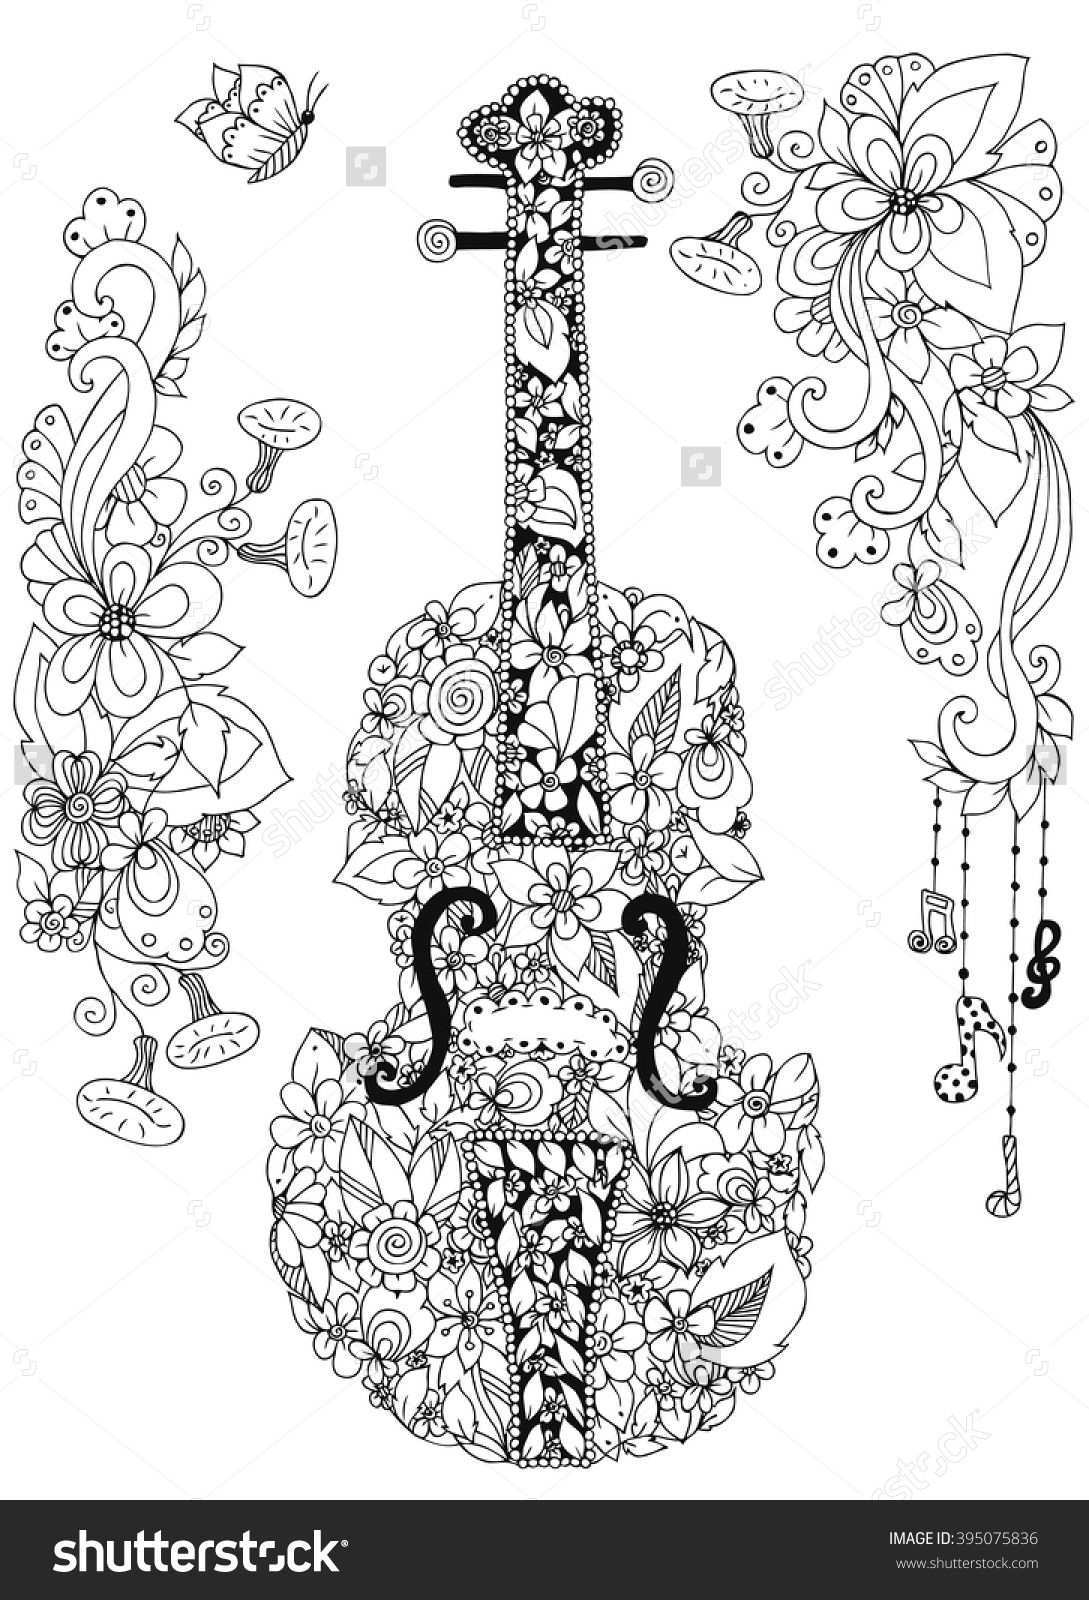 Zentangle Violin Cello Of Flowers Doodle Zenart